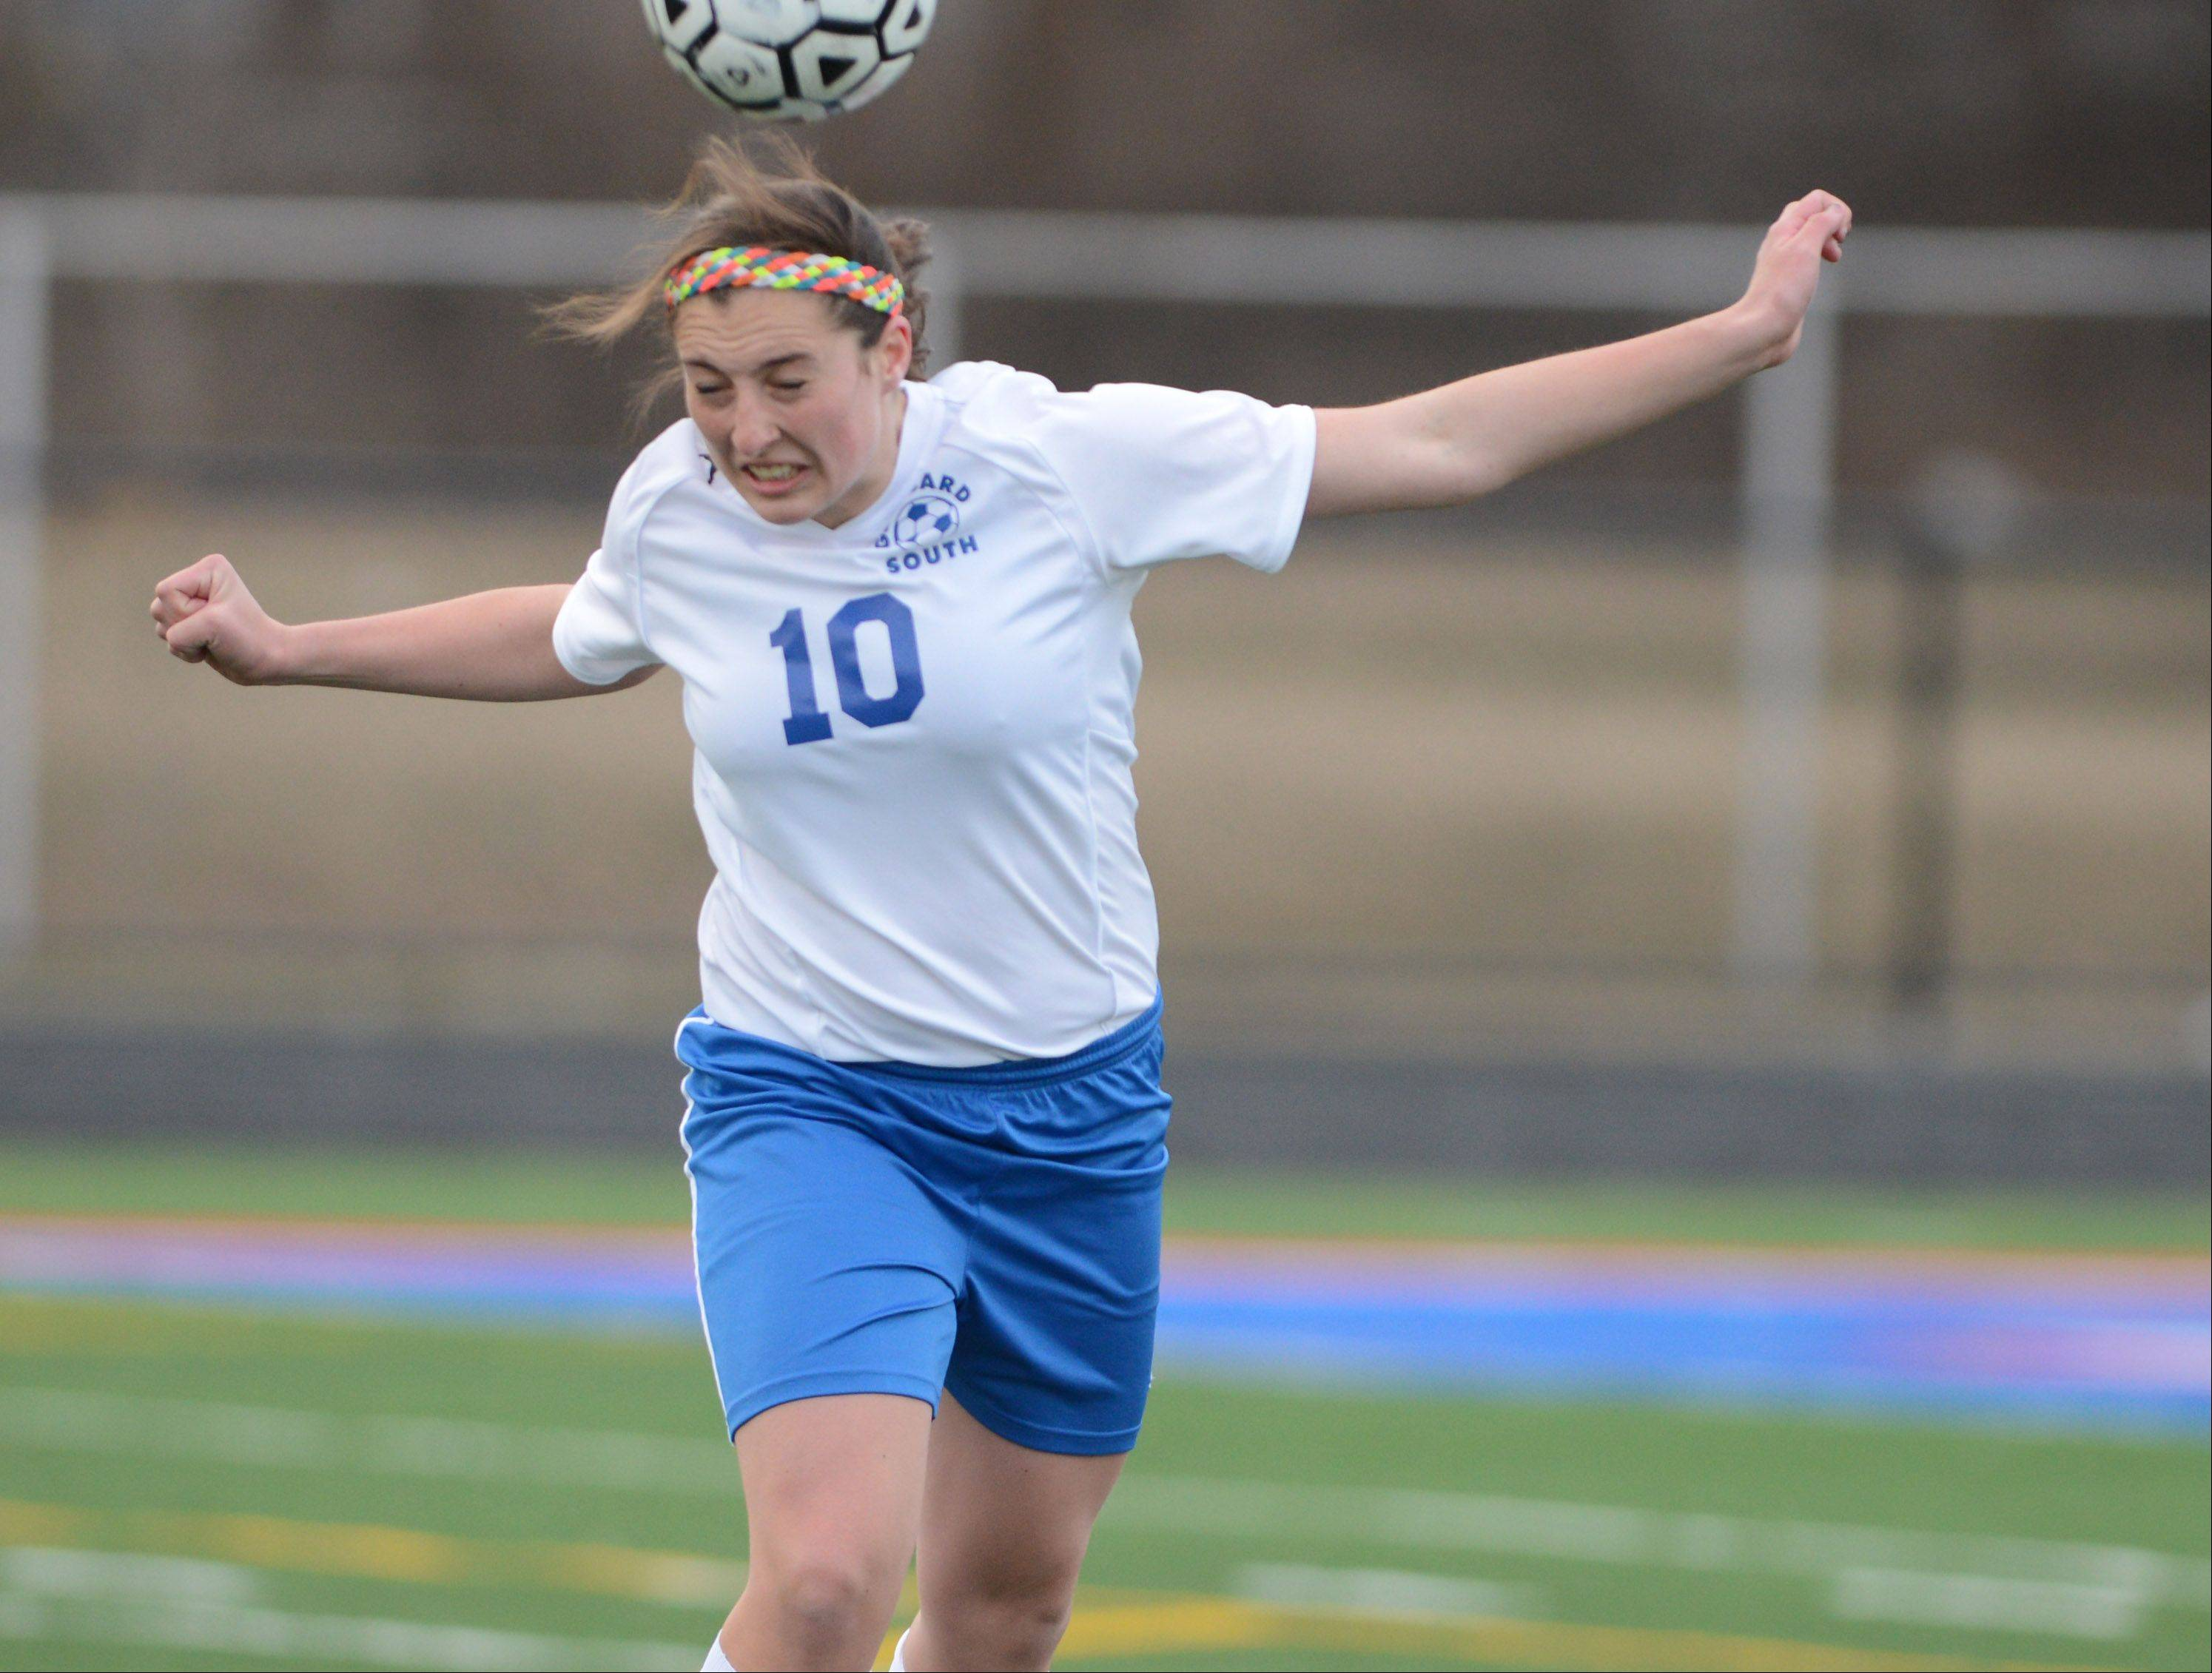 Stephanie Brennan of Glenbard South heads a ball during the St. Francis at Glenbard South girls soccer game Friday.